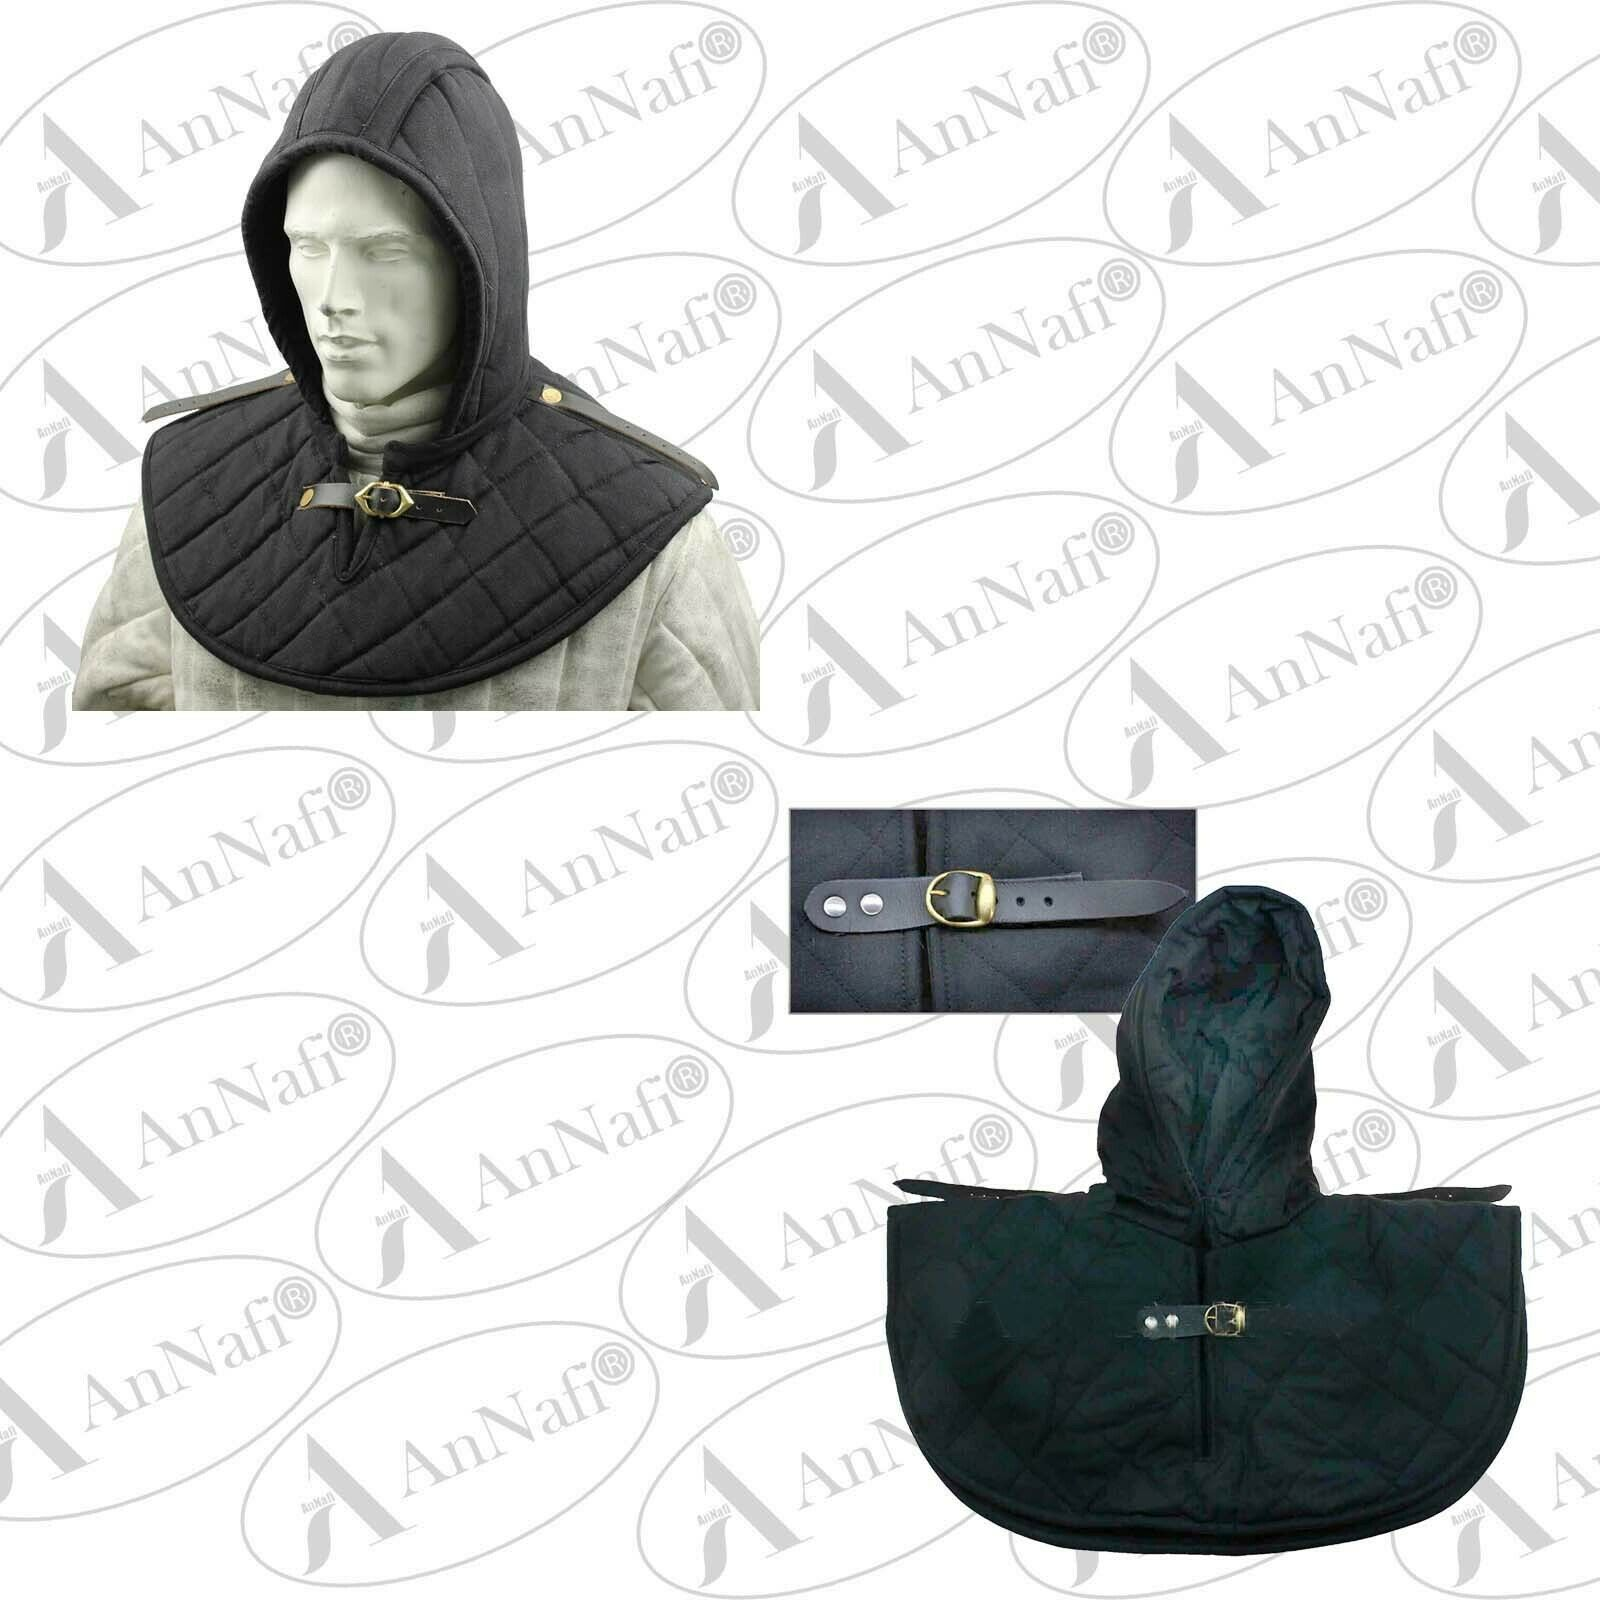 Medieval Cotton Padded Hood Armor Collar and Coif Arming Cap - Black Arming Cap